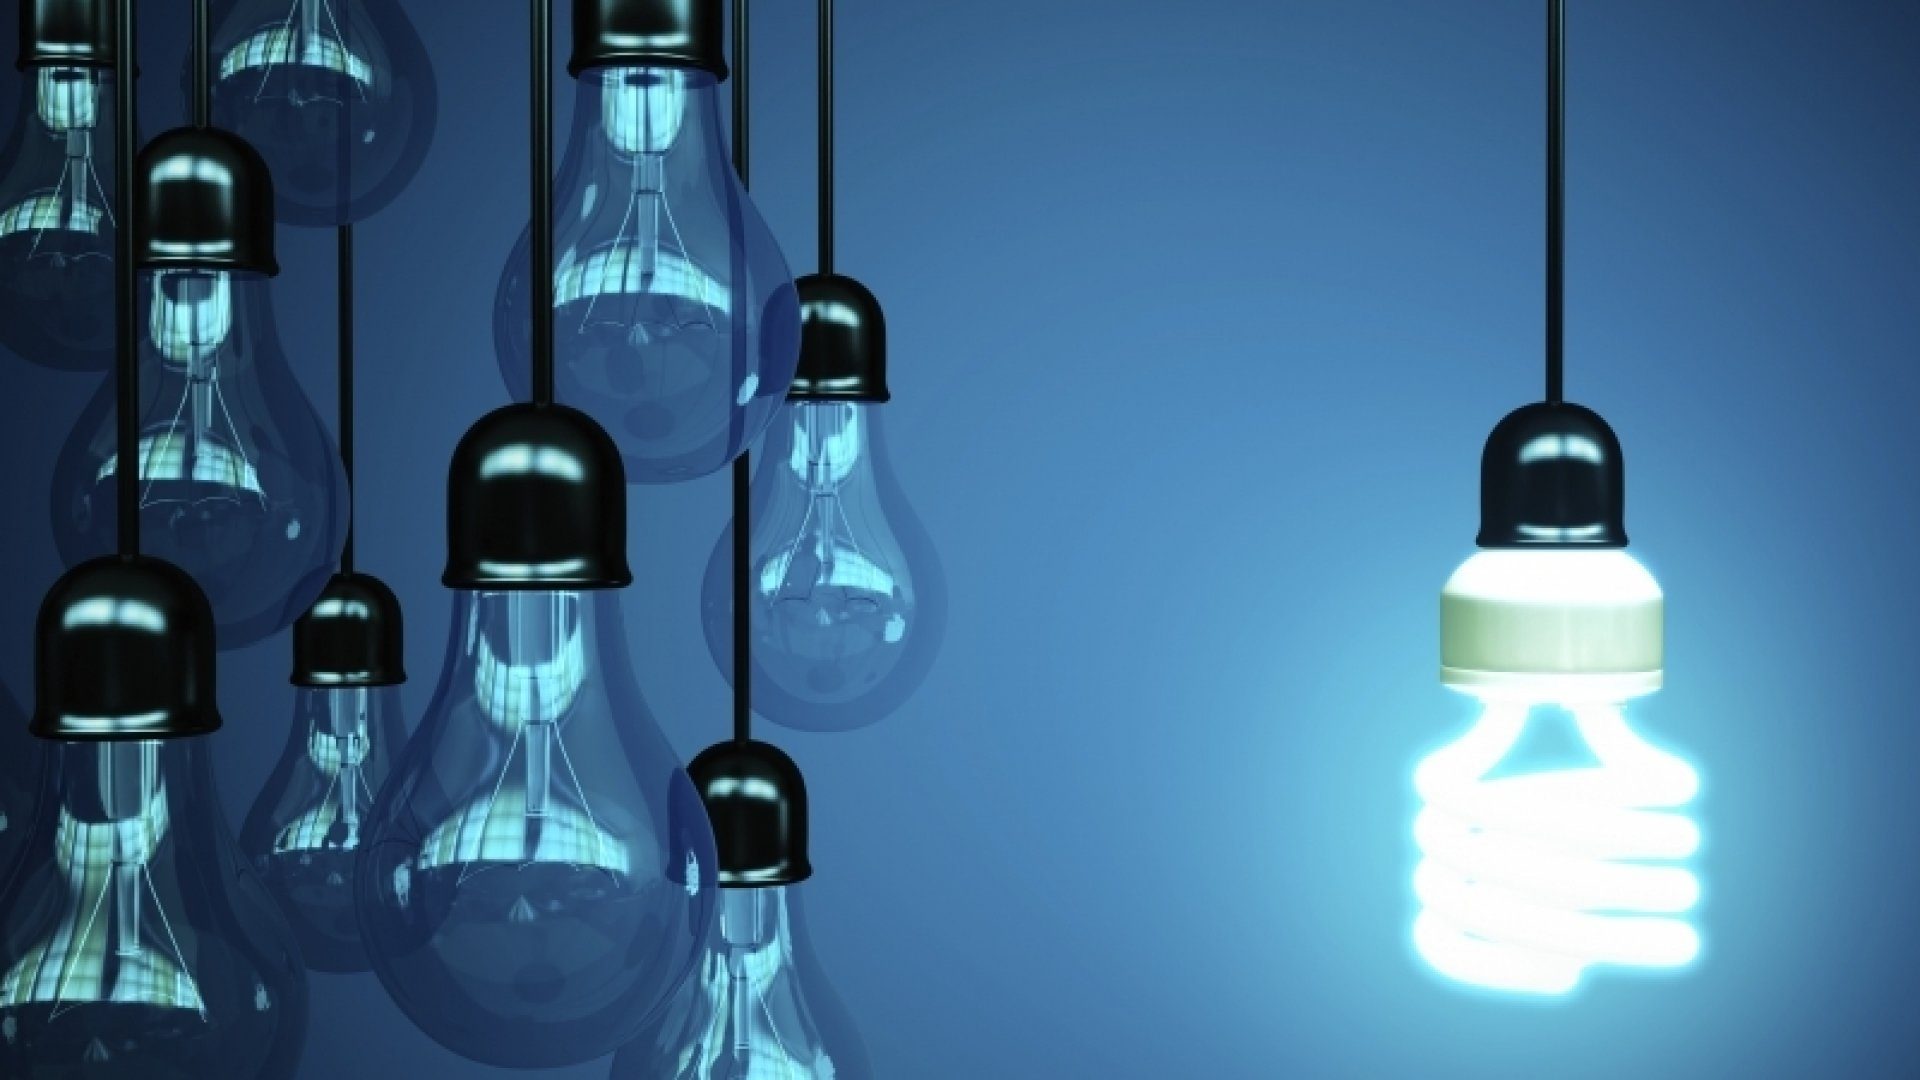 What Are You Willing to Give Up to Get Innovation?